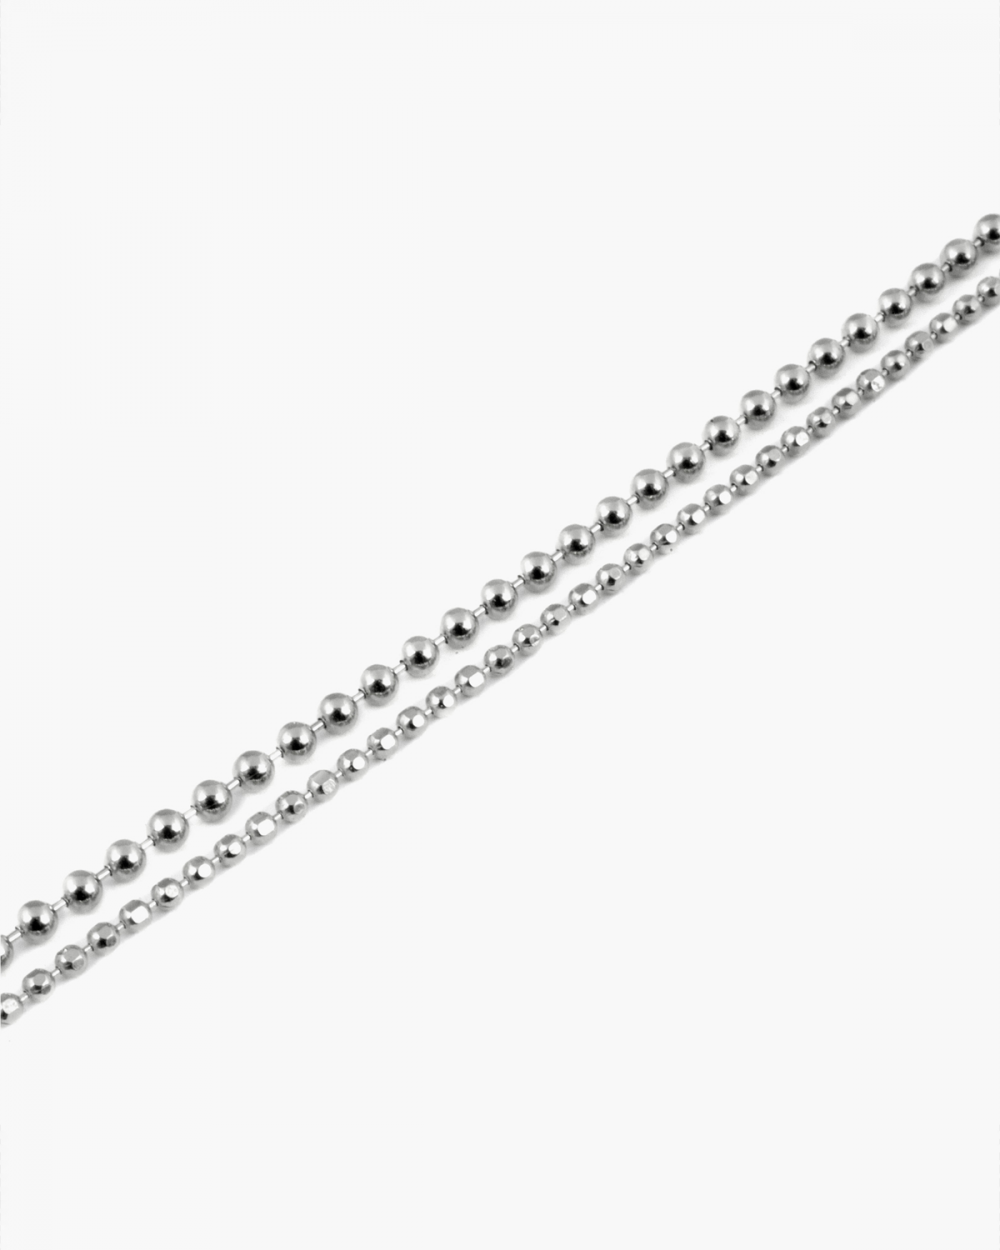 Anklets TWO LAYERS SPHERES ANKLET NOVE25